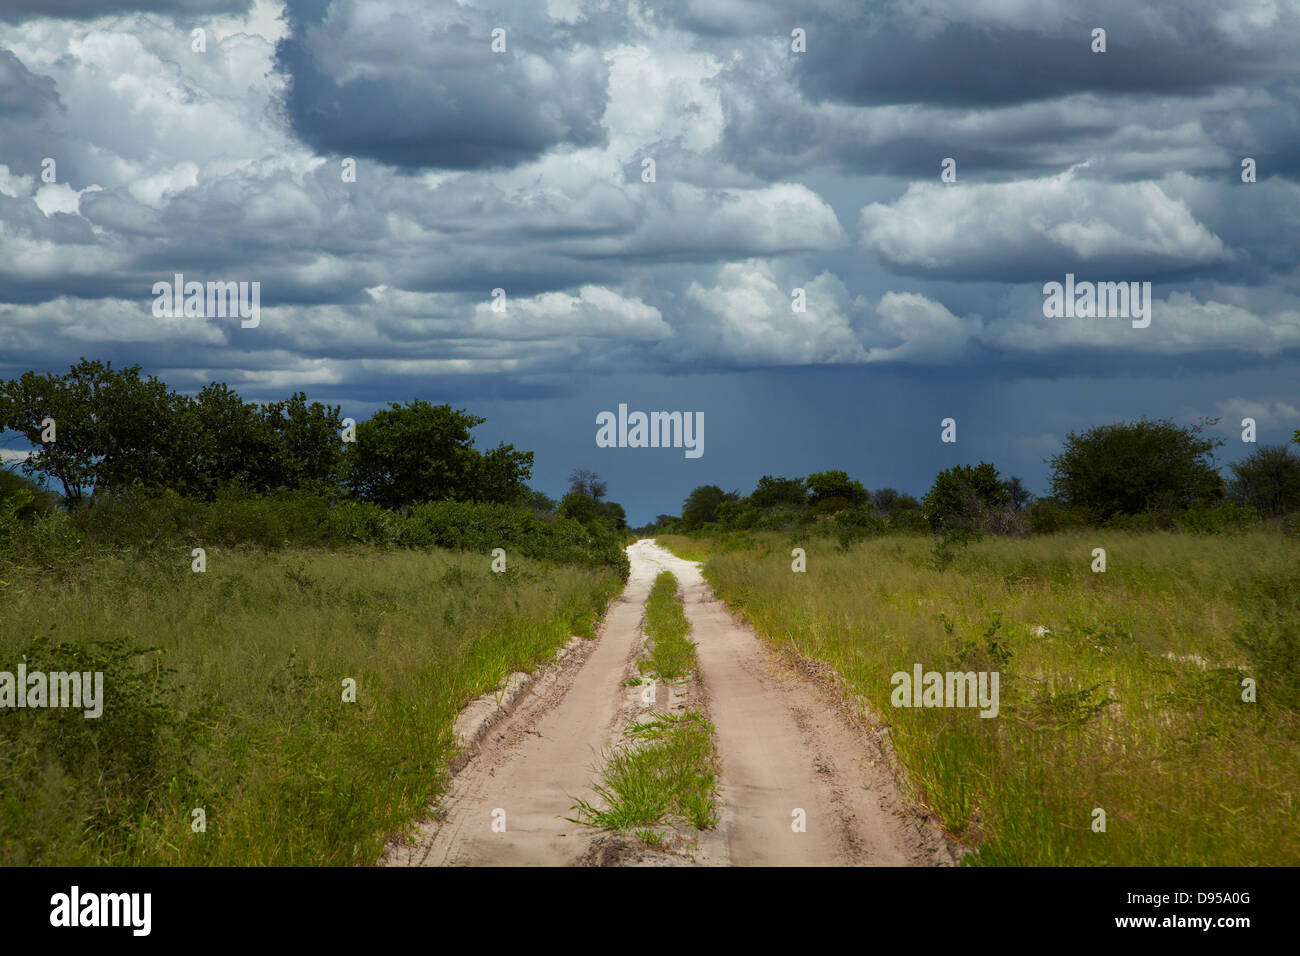 Track from Dobe Border to Nokaneng, and storm clouds, North-western Botswana, Africa Stock Photo